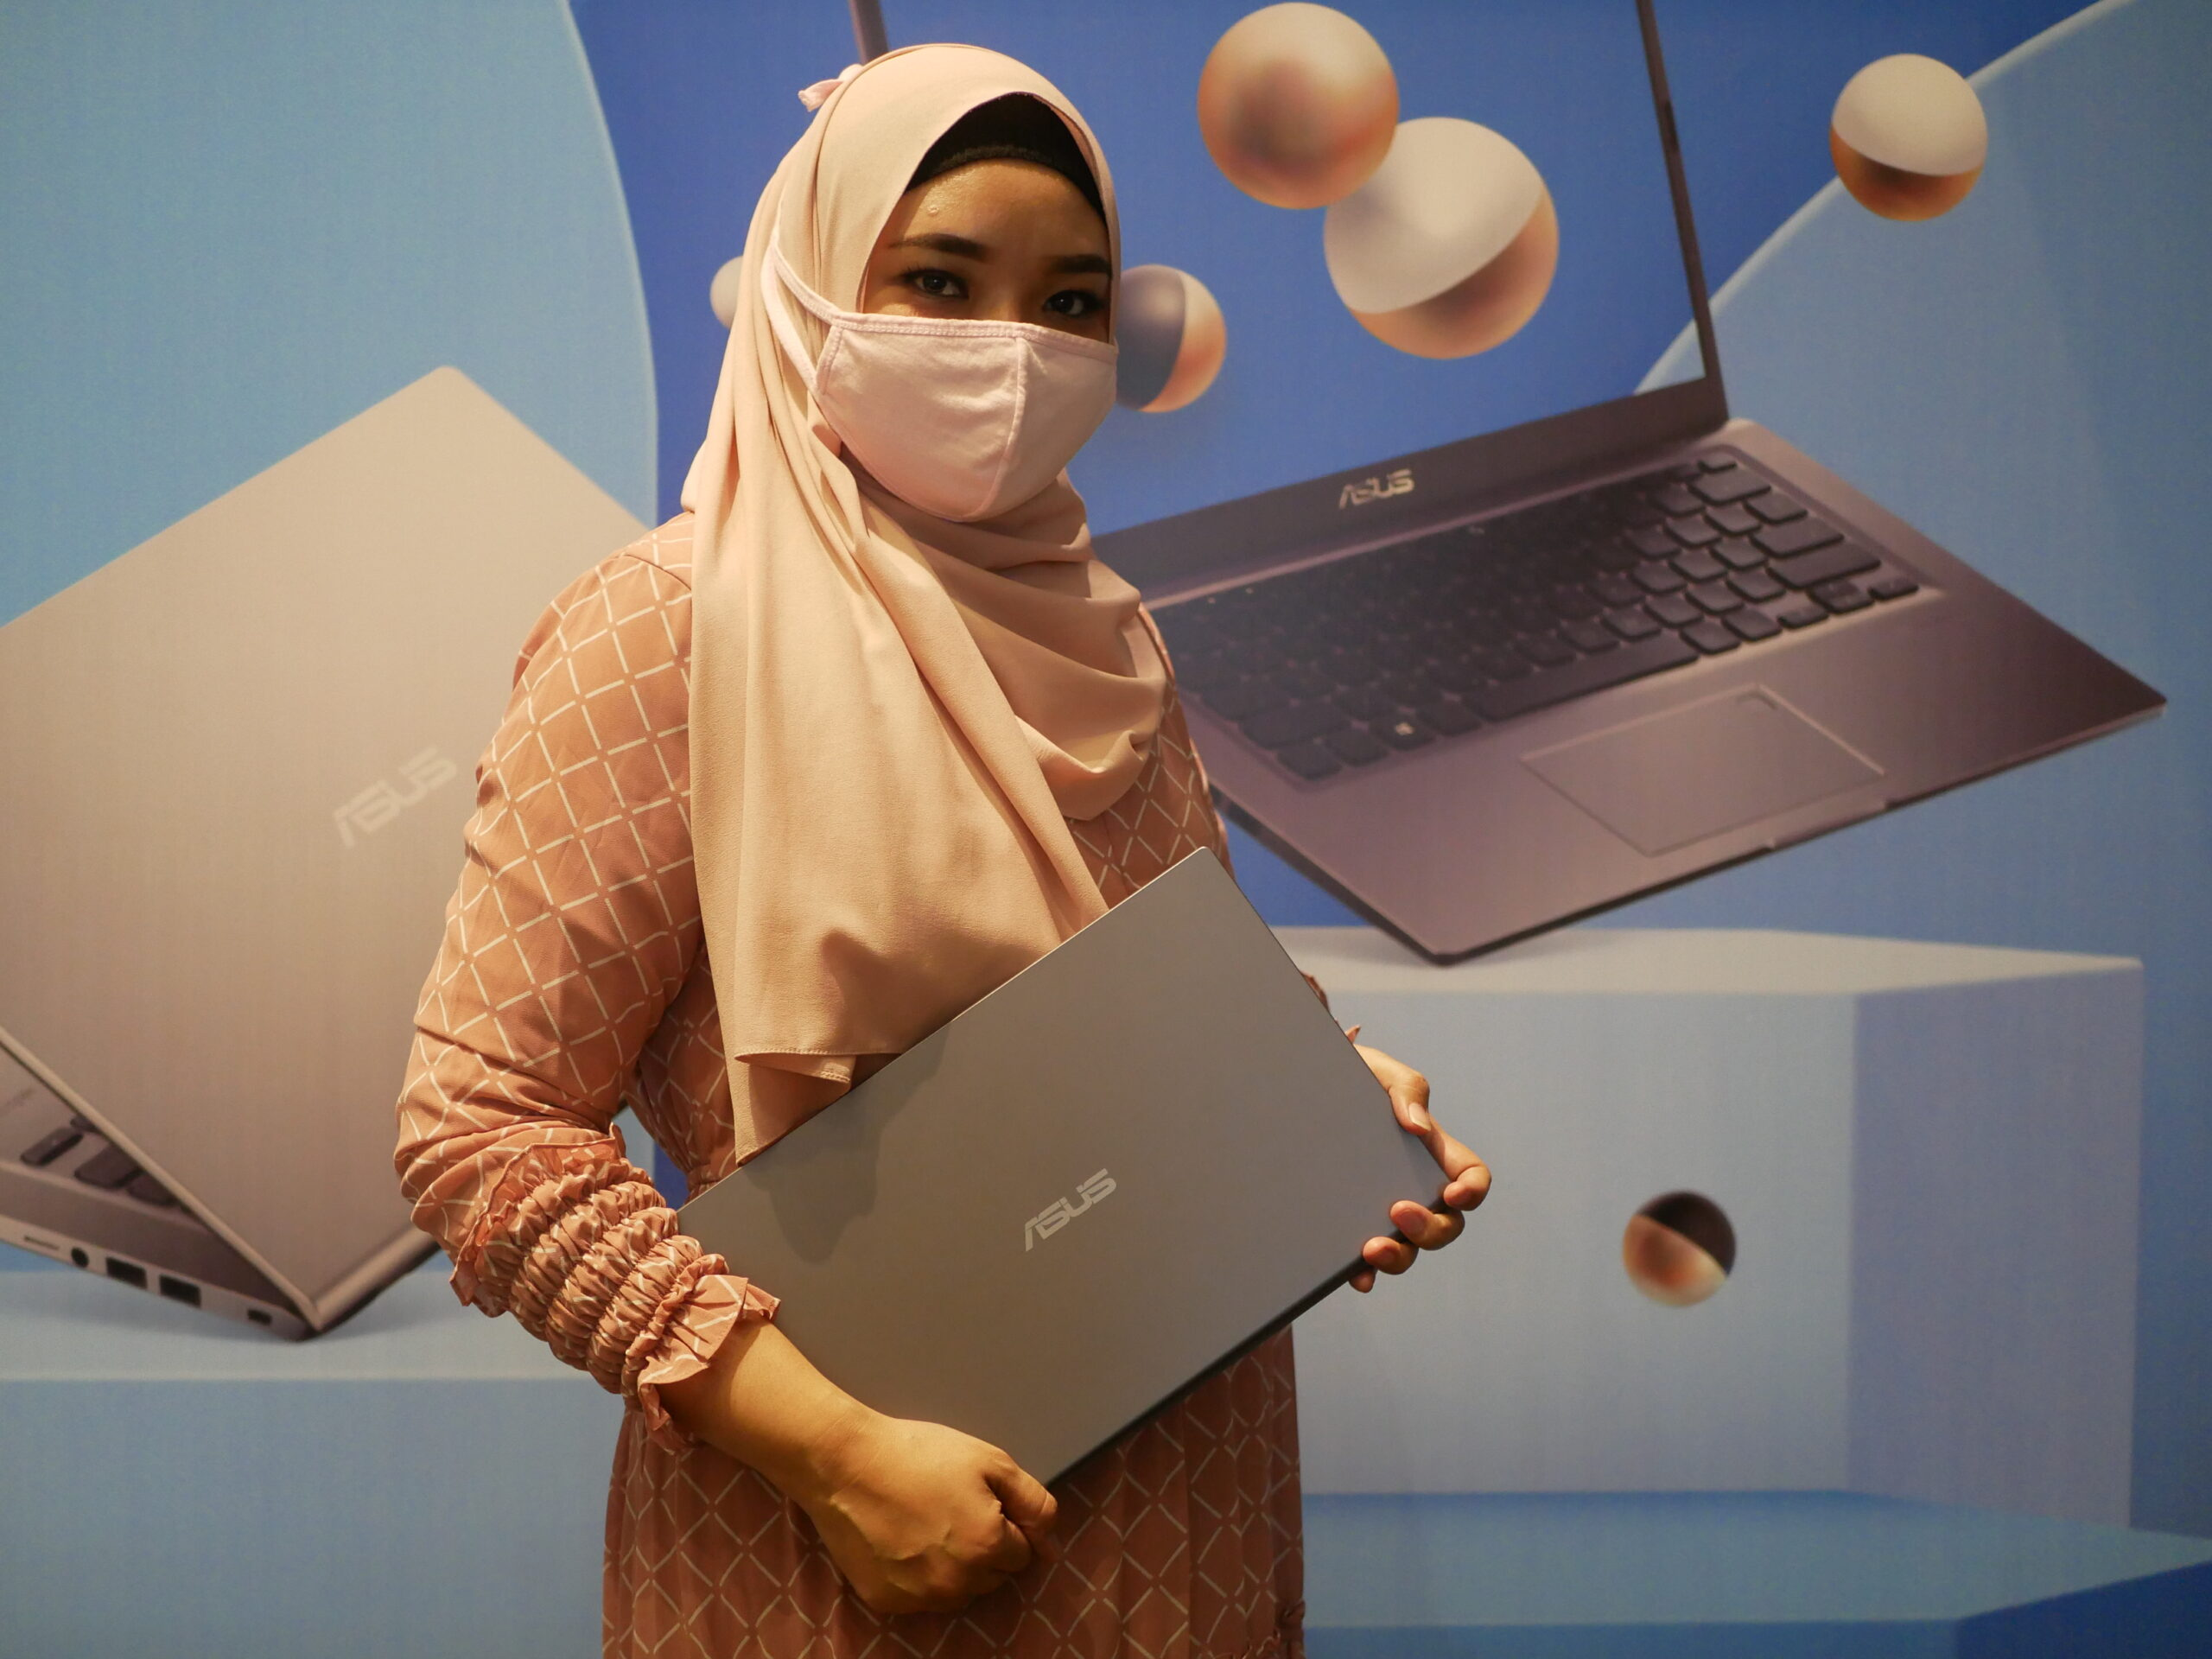 Me and ASUS Vivobook 14 A416